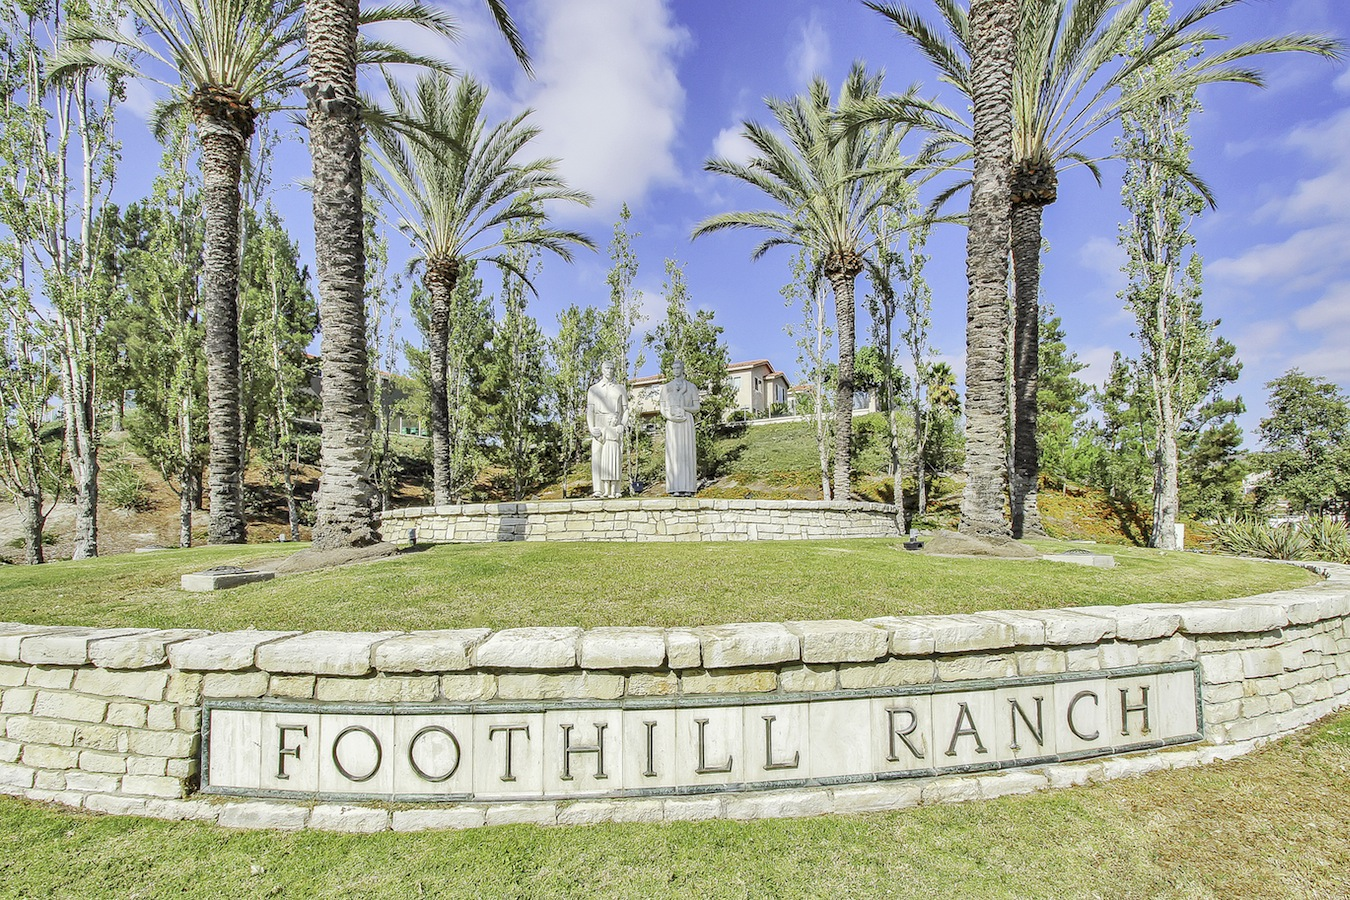 foothill ranch single asian girls 92610 zip code foothill ranch: zip code: 92610: state: asian: 1,632: 149: 36%: single-family owner-occupied homes.